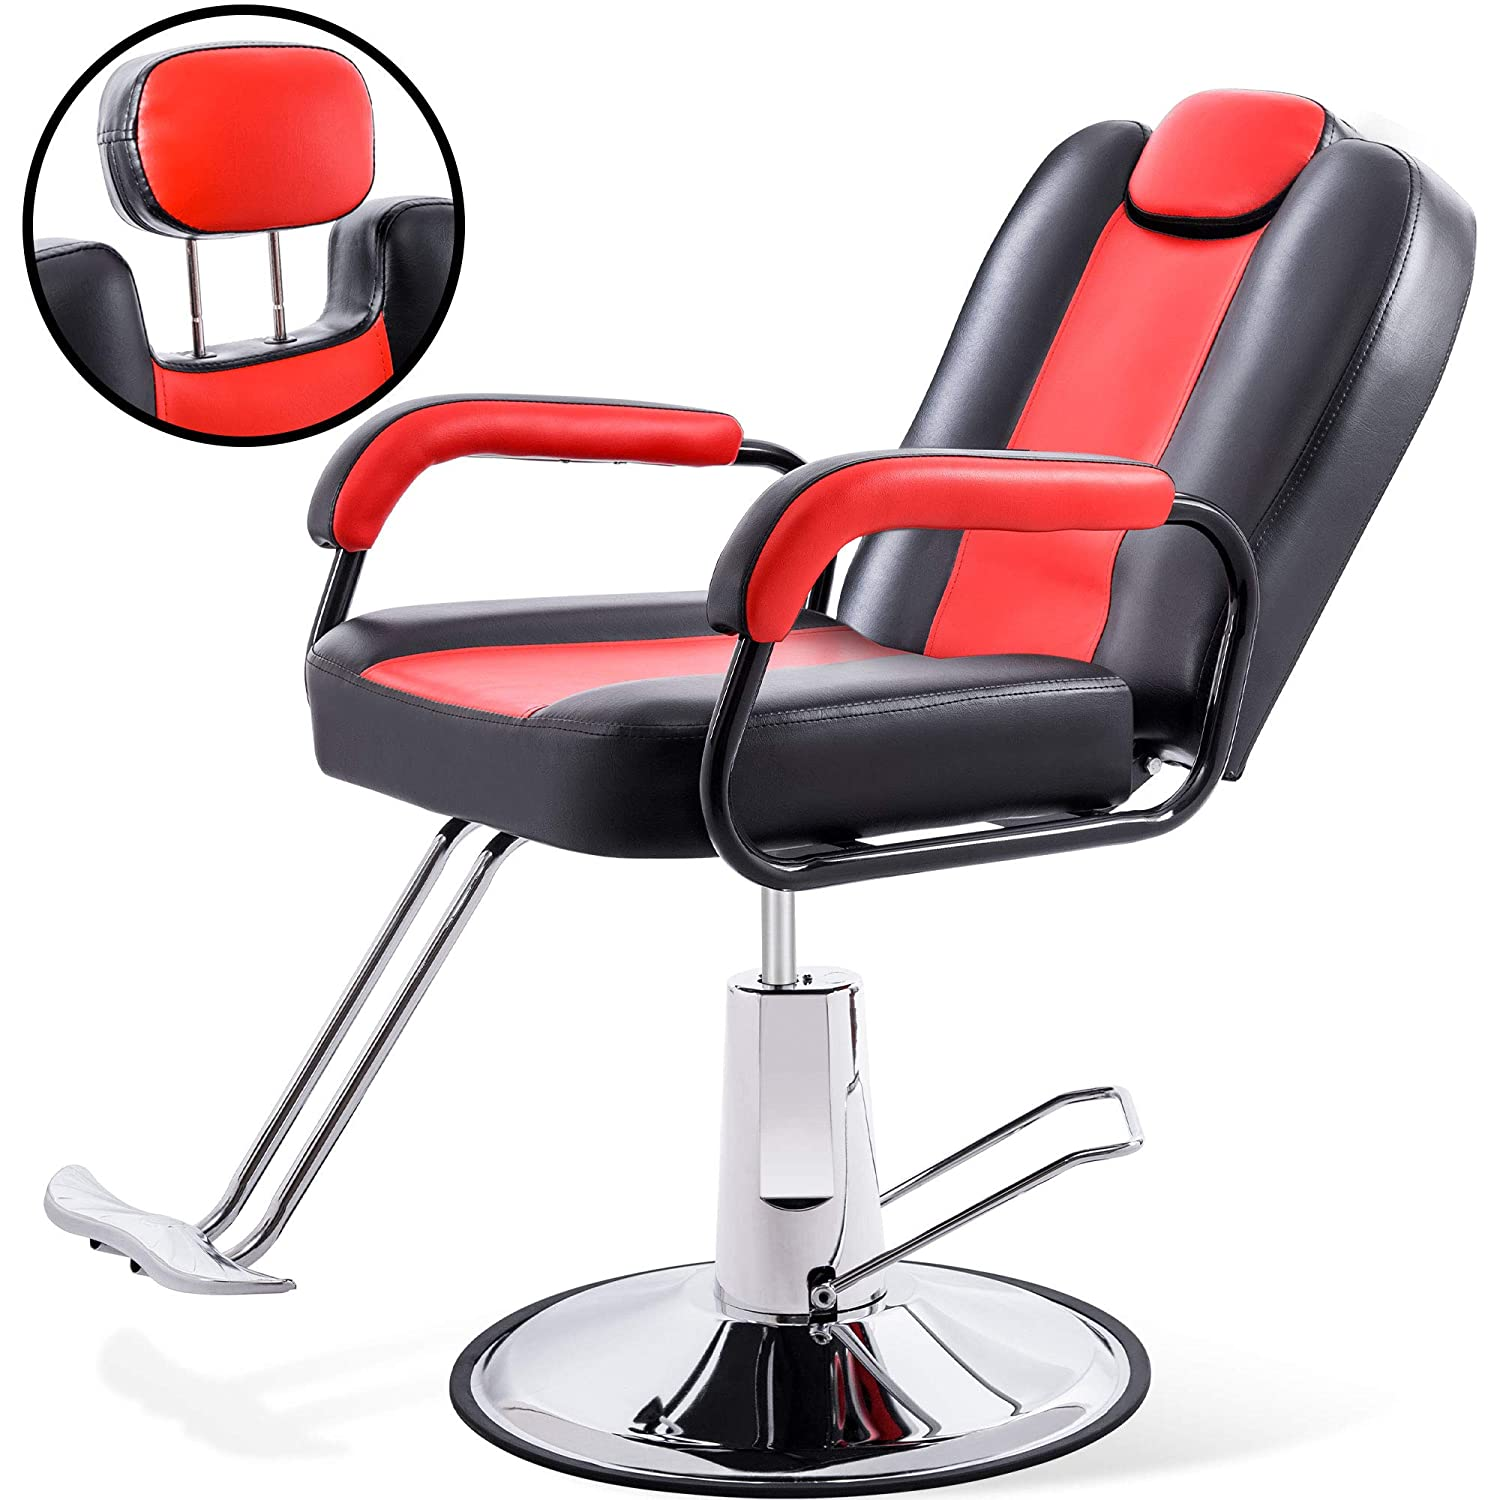 Hydraulic Recliner Barber Chair For Hair Salon With 20 Extra Wider Seat Heavy Duty Hydraulic Pump 2021 Upgraded Salon Beauty Equipment Black Red Kitchen Dining